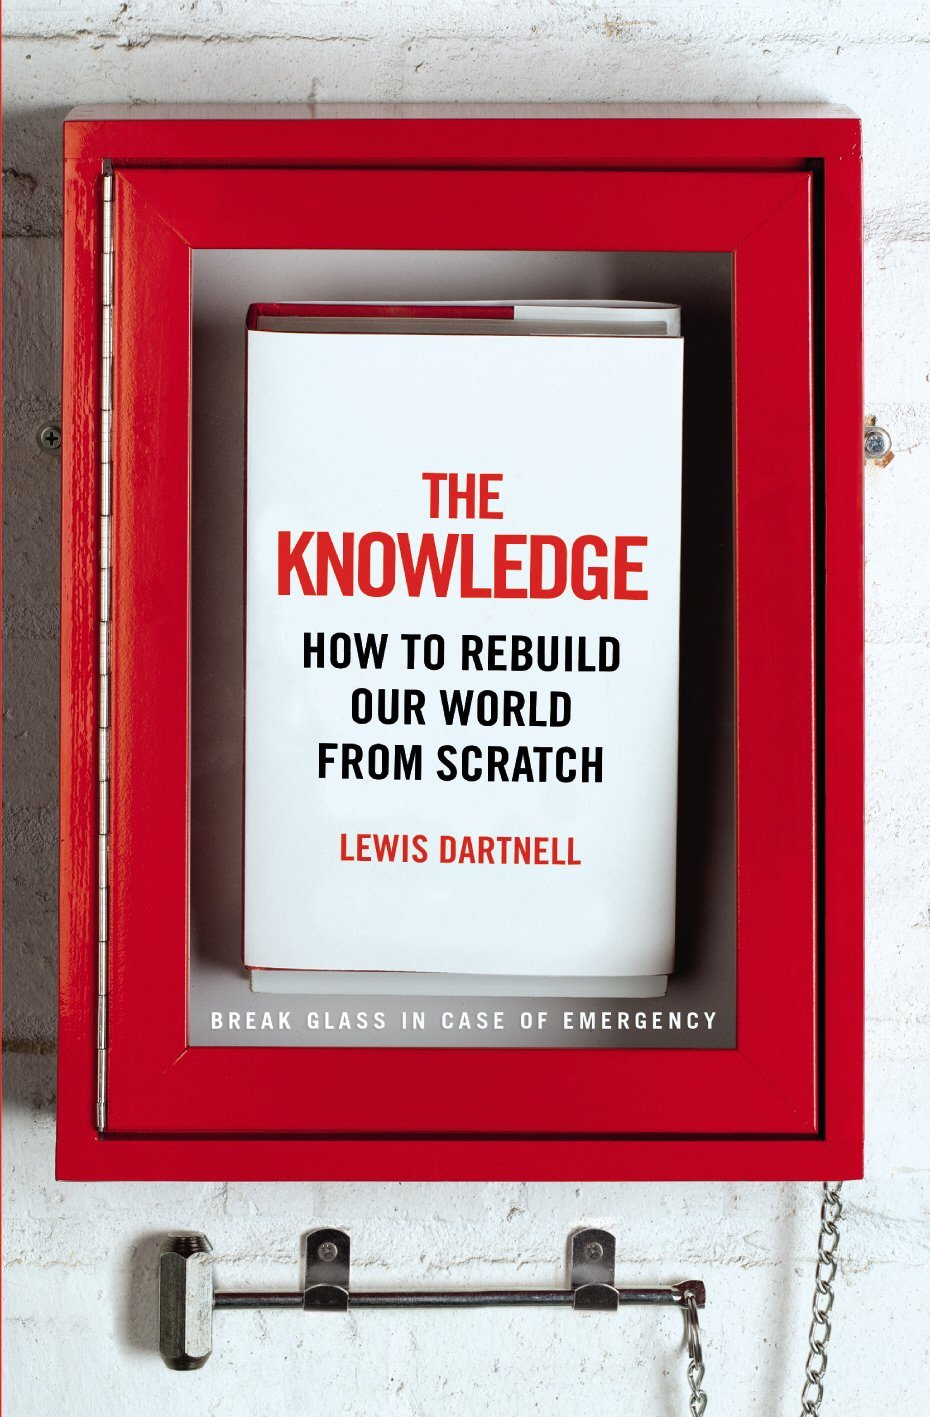 Lewis Dartnell, author of The Knowledge speaks at The Interval on 3/24/02015